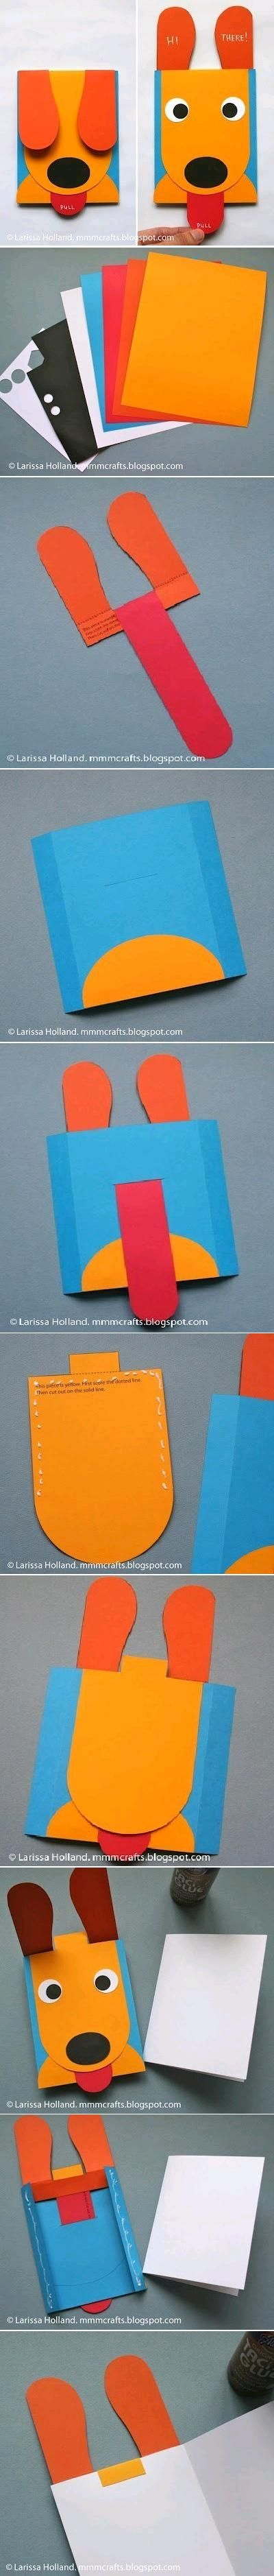 Making fun cards is a really fun idea for a gift. You can...